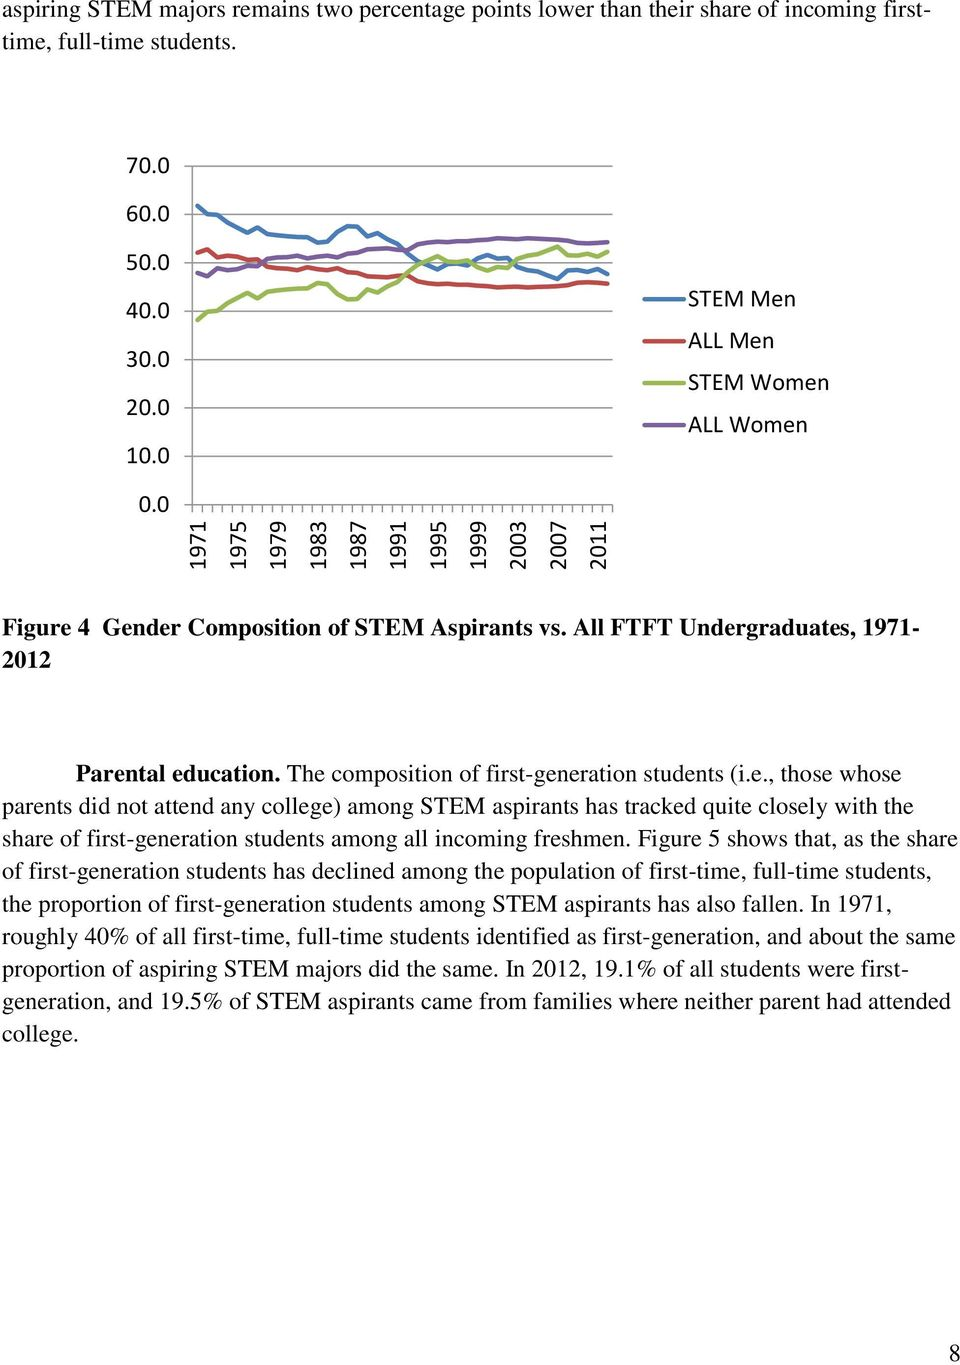 The composition of first-generation students (i.e., those whose parents did not attend any college) among STEM aspirants has tracked quite closely with the share of first-generation students among all incoming freshmen.